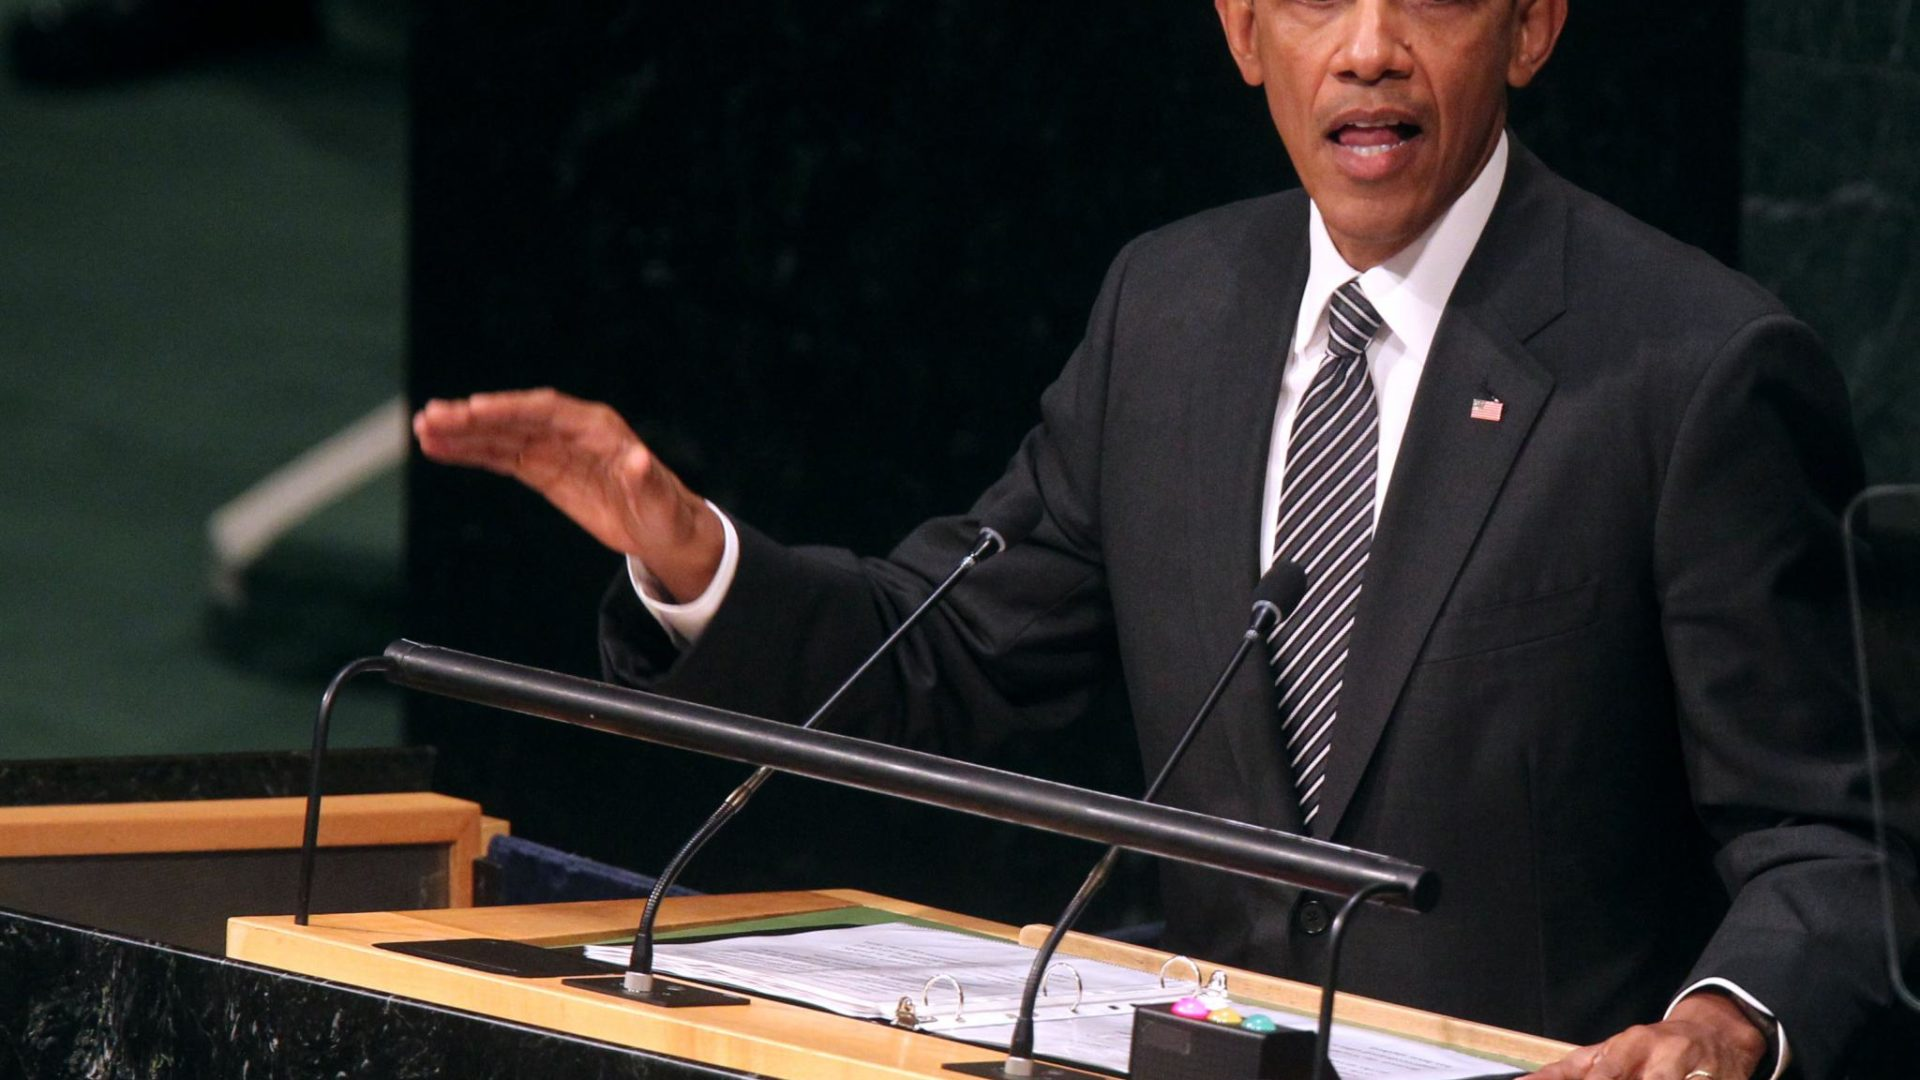 President Obama on Police Brutality: 'The African-American Community is Not Making This Up'